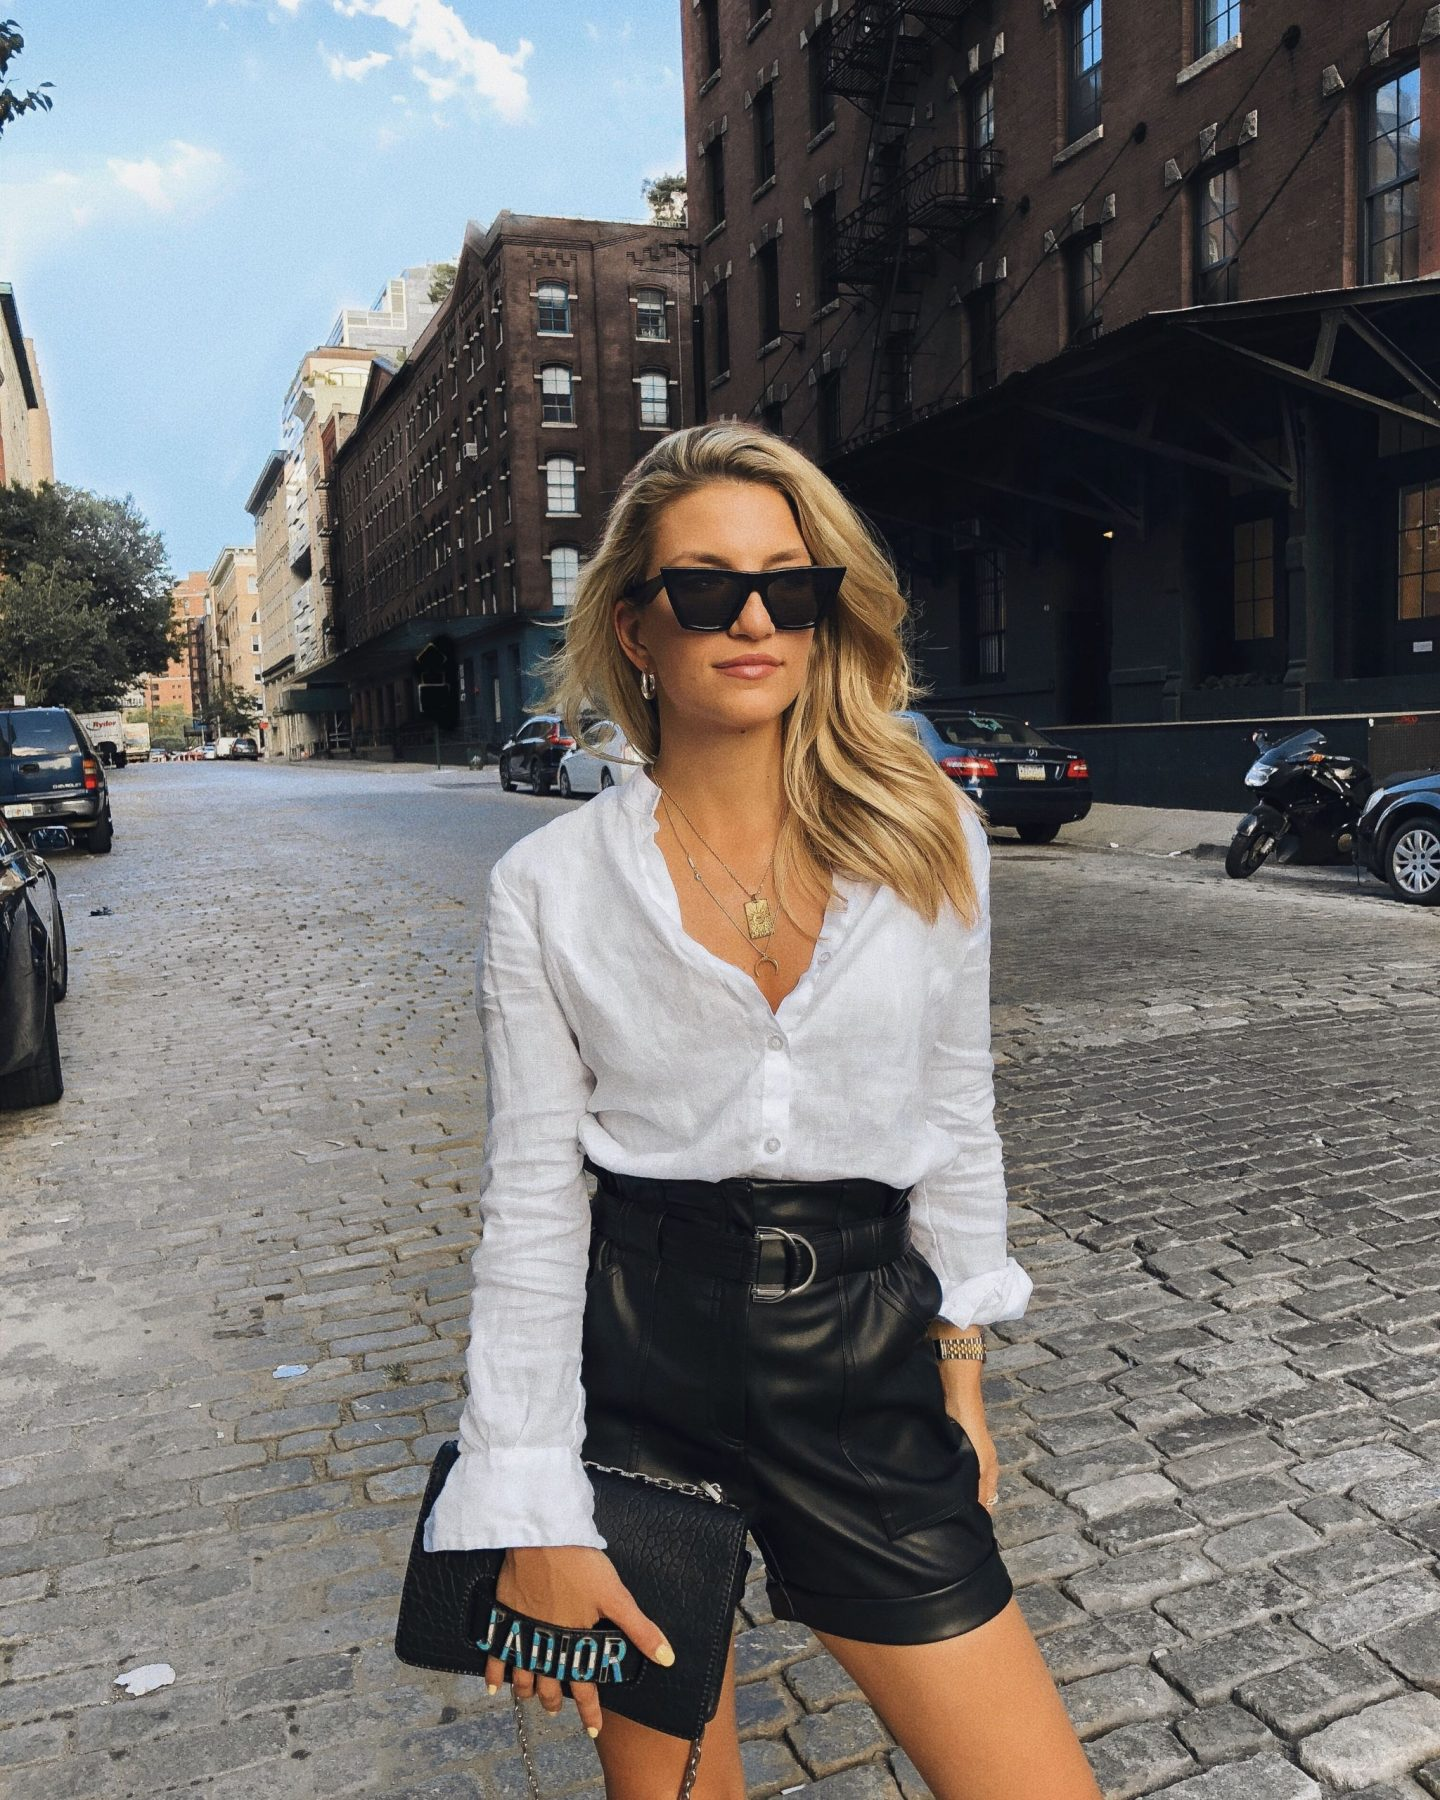 Cassandra DiMicco, Cass DiMicco, Dressed For Dreams, NYC, New York City, New York, Street Style NYC, Street Style 2018, NYC Street Style, NYC Outfit Inspo Street Style Outfits, 2018 Trends, Summer Style, Summer Outfit Inspo, NYC Fashion Blogger, NYC Fashion Blogger, NYC to do list, NYC to do, NYC bucket list, NYC Instagram Spots, TriBeCa, River Island, River Island Leather Shorts, J'Adior, Christian Dior J'Adior Bag, Dior J'Adior Bag, Boyfriend Shirt, Layered Necklaces, Celine Edge Sunnies, Celine